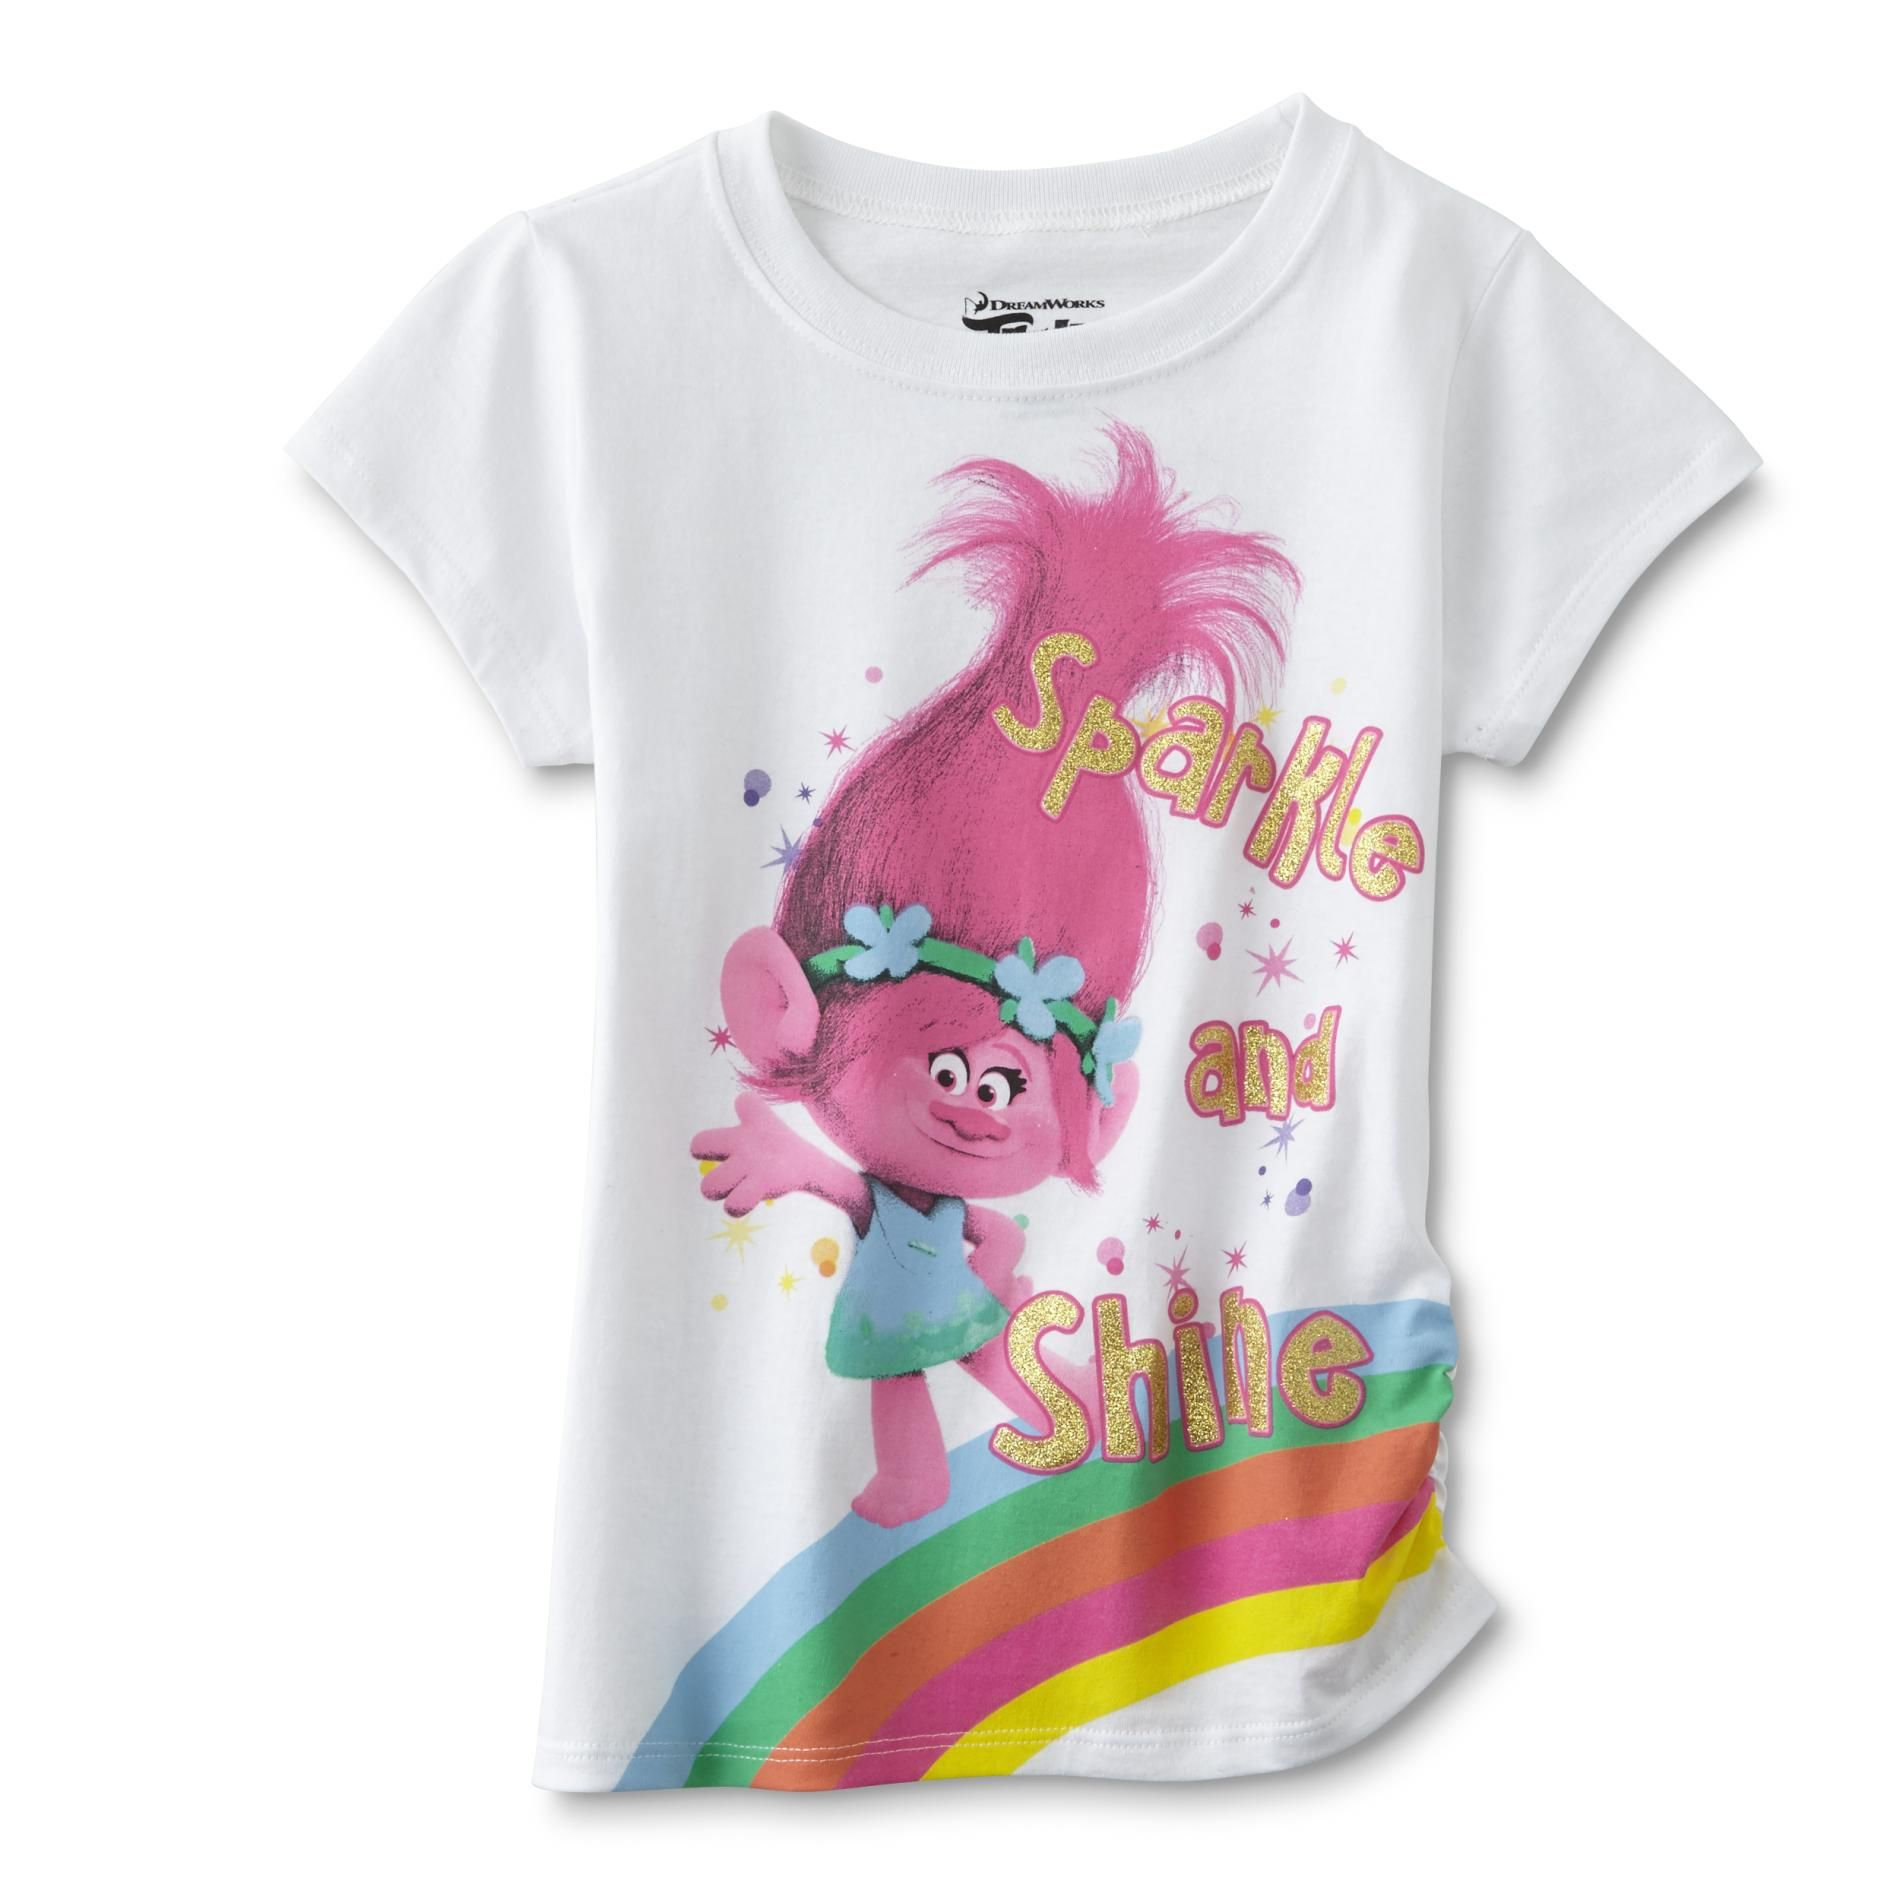 2993e1bfe05 Dreamworks Trolls Girls  T-Shirt - Princess Poppy